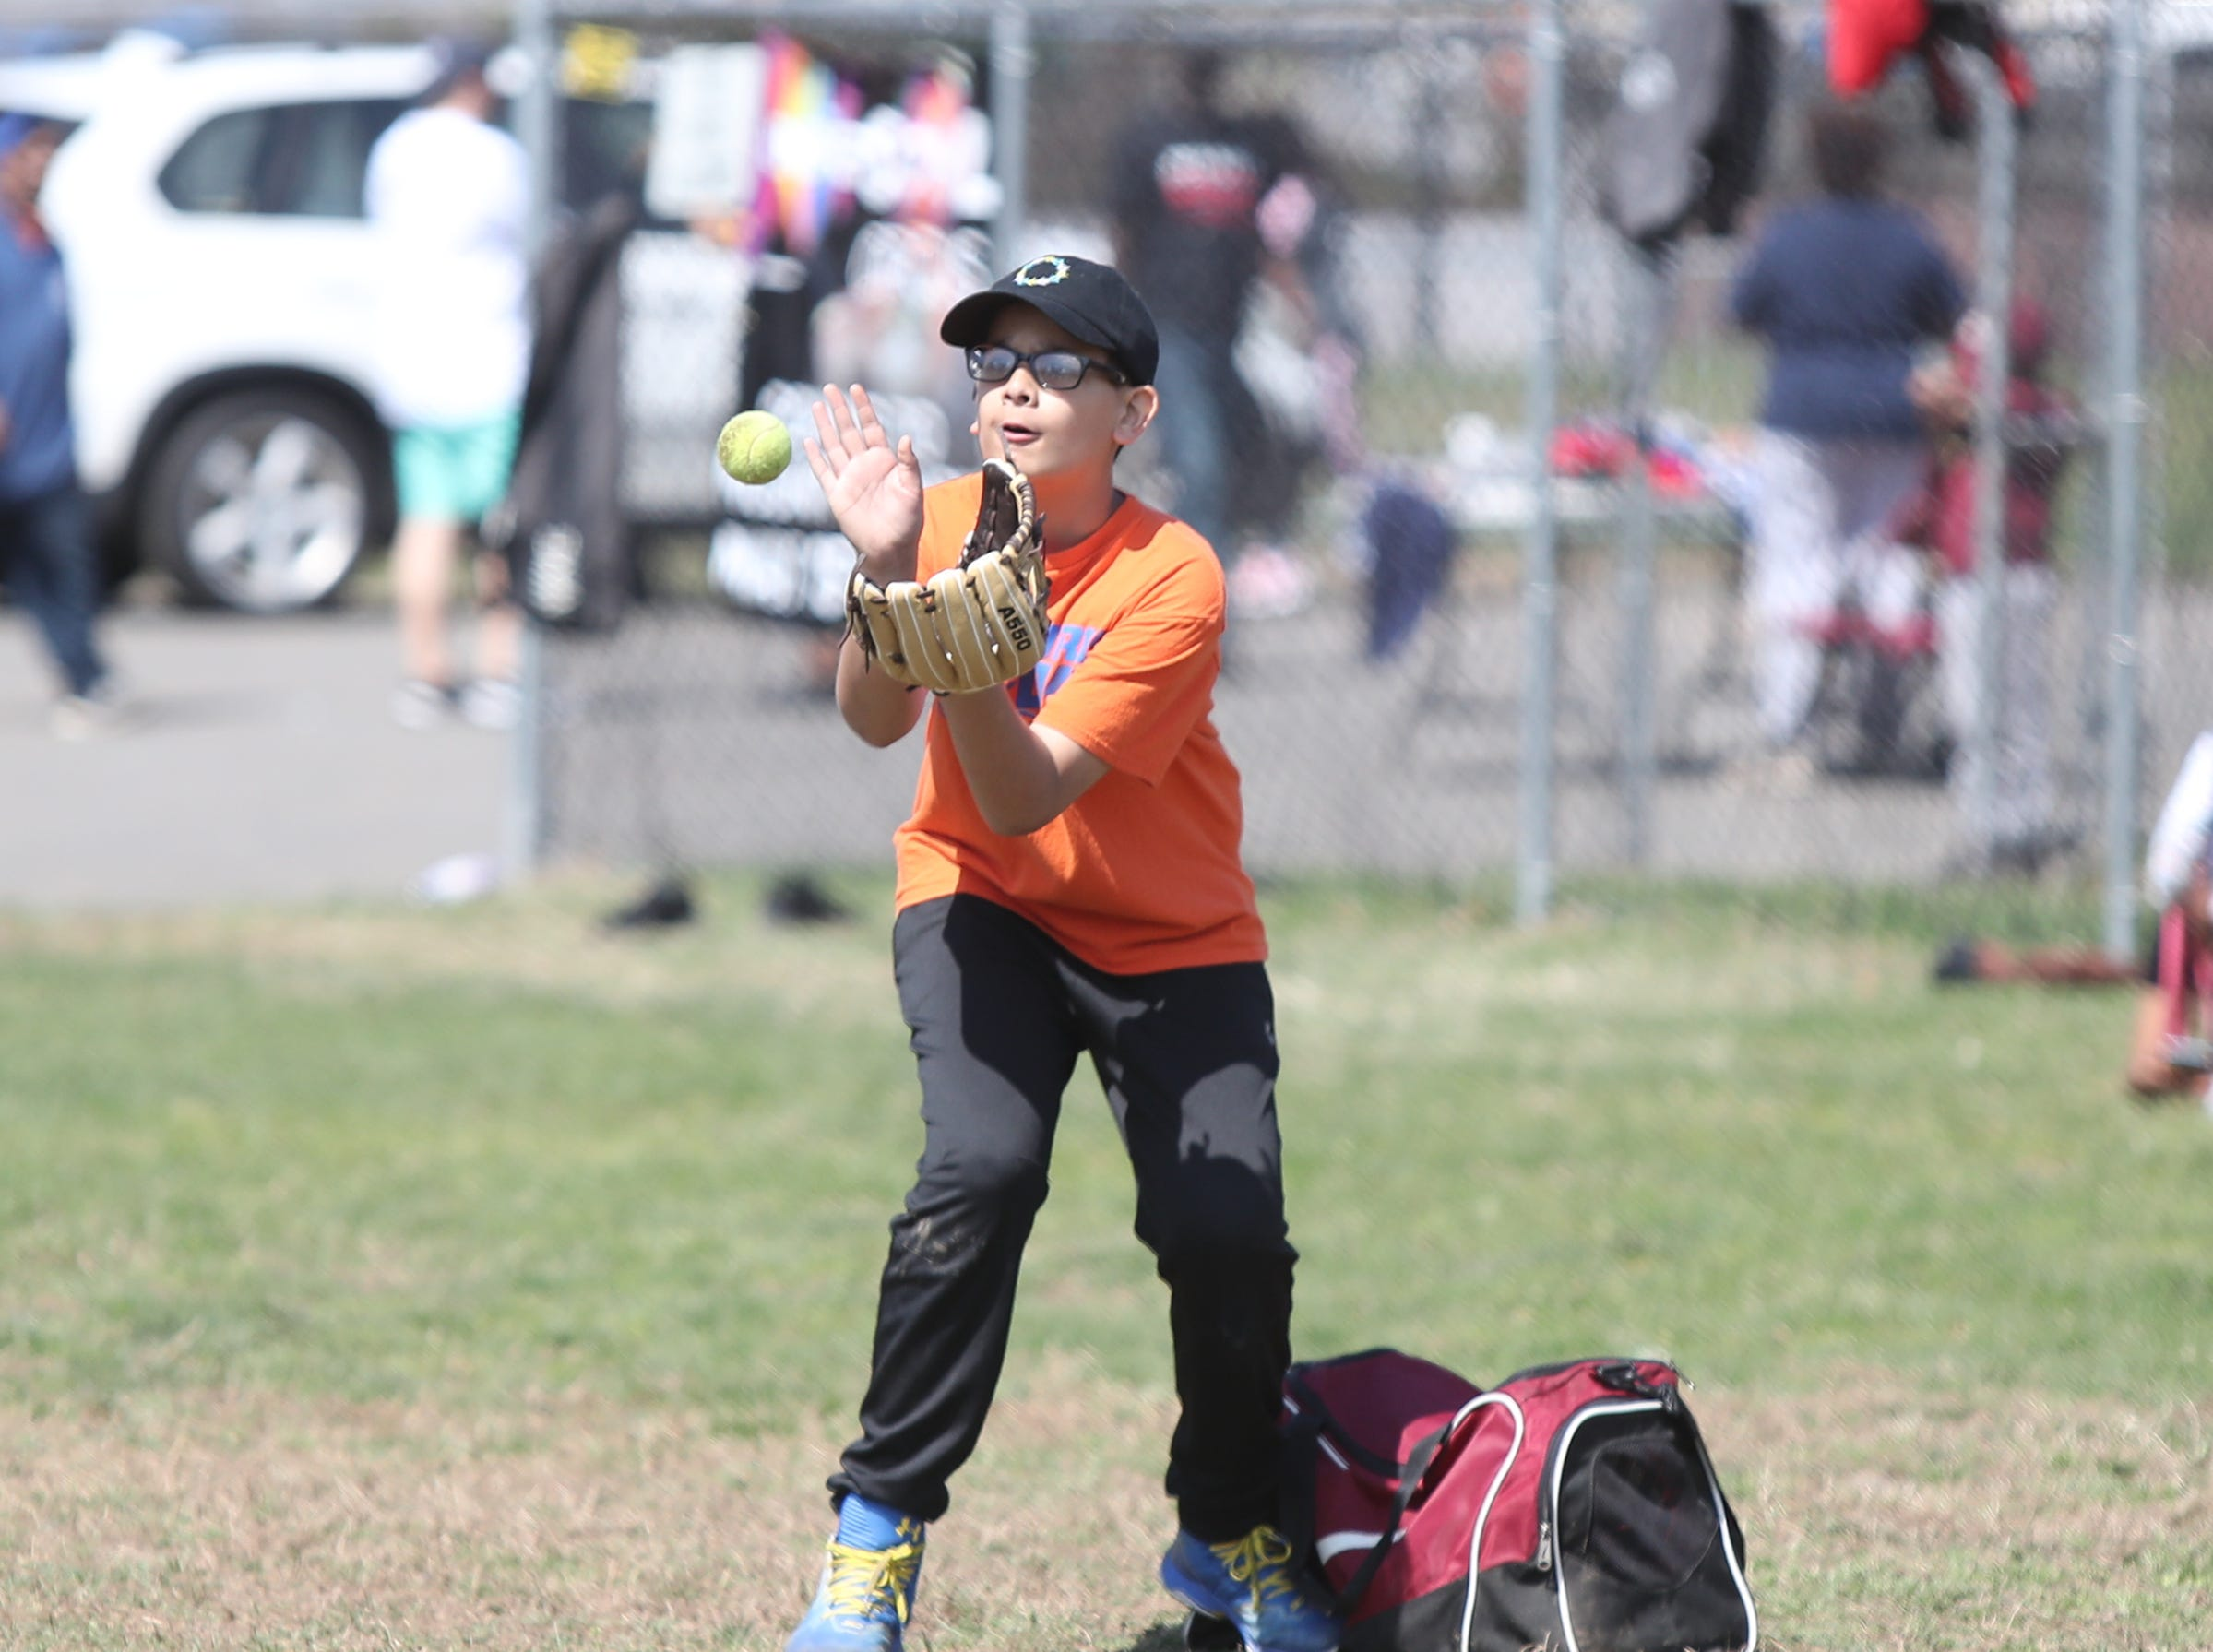 Christian Bueno, 12, pulls in a throw at first base during little league practice at Brush Park on Saturday, April 13, 2019 during Jackie Robinson Day in Mount Vernon.